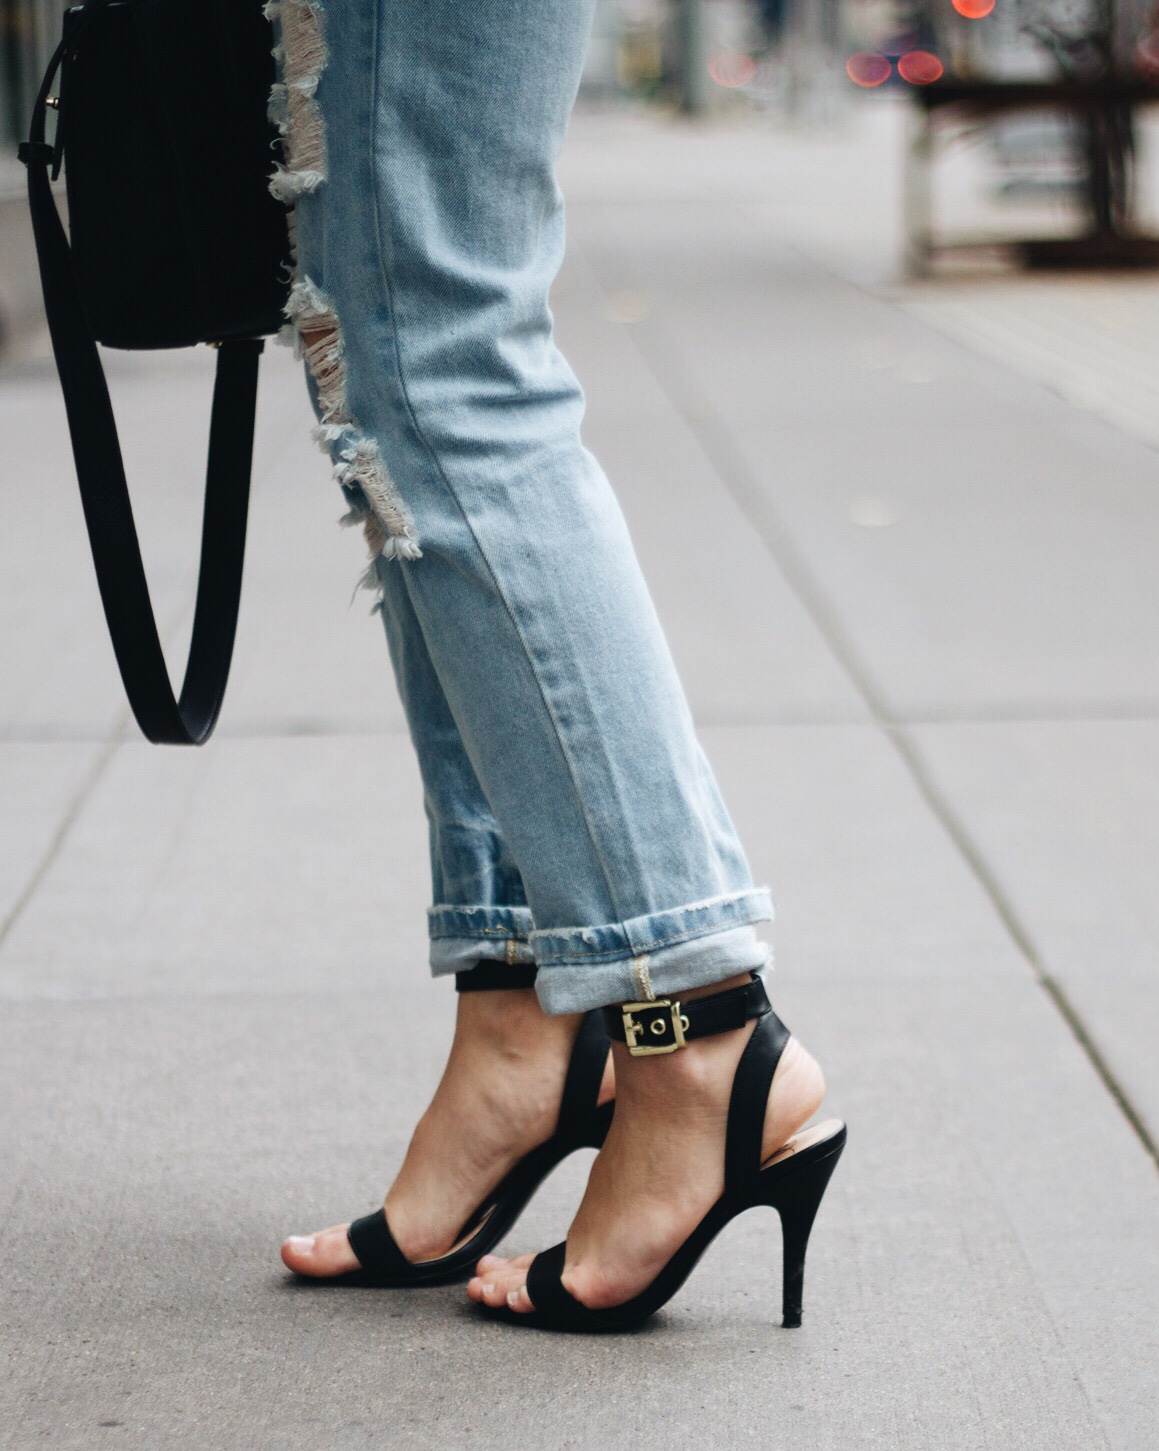 Shoes / Forever 21  Bag / Urban Outfitters